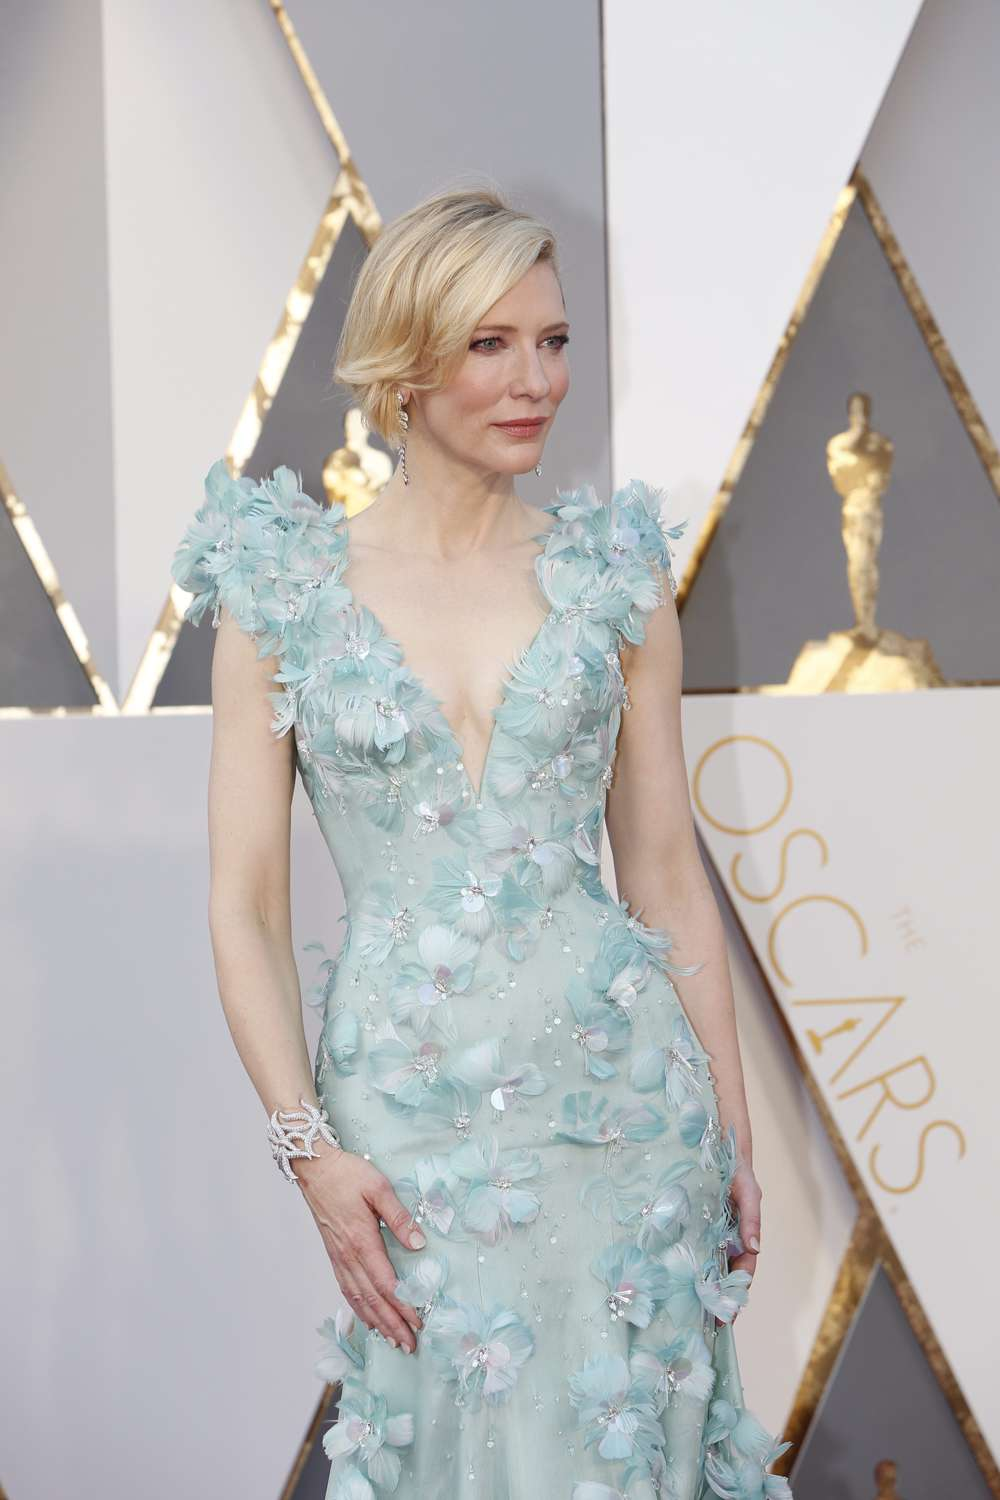 Cate Blanchett in Armani Prive embellished with crystals and flowers.